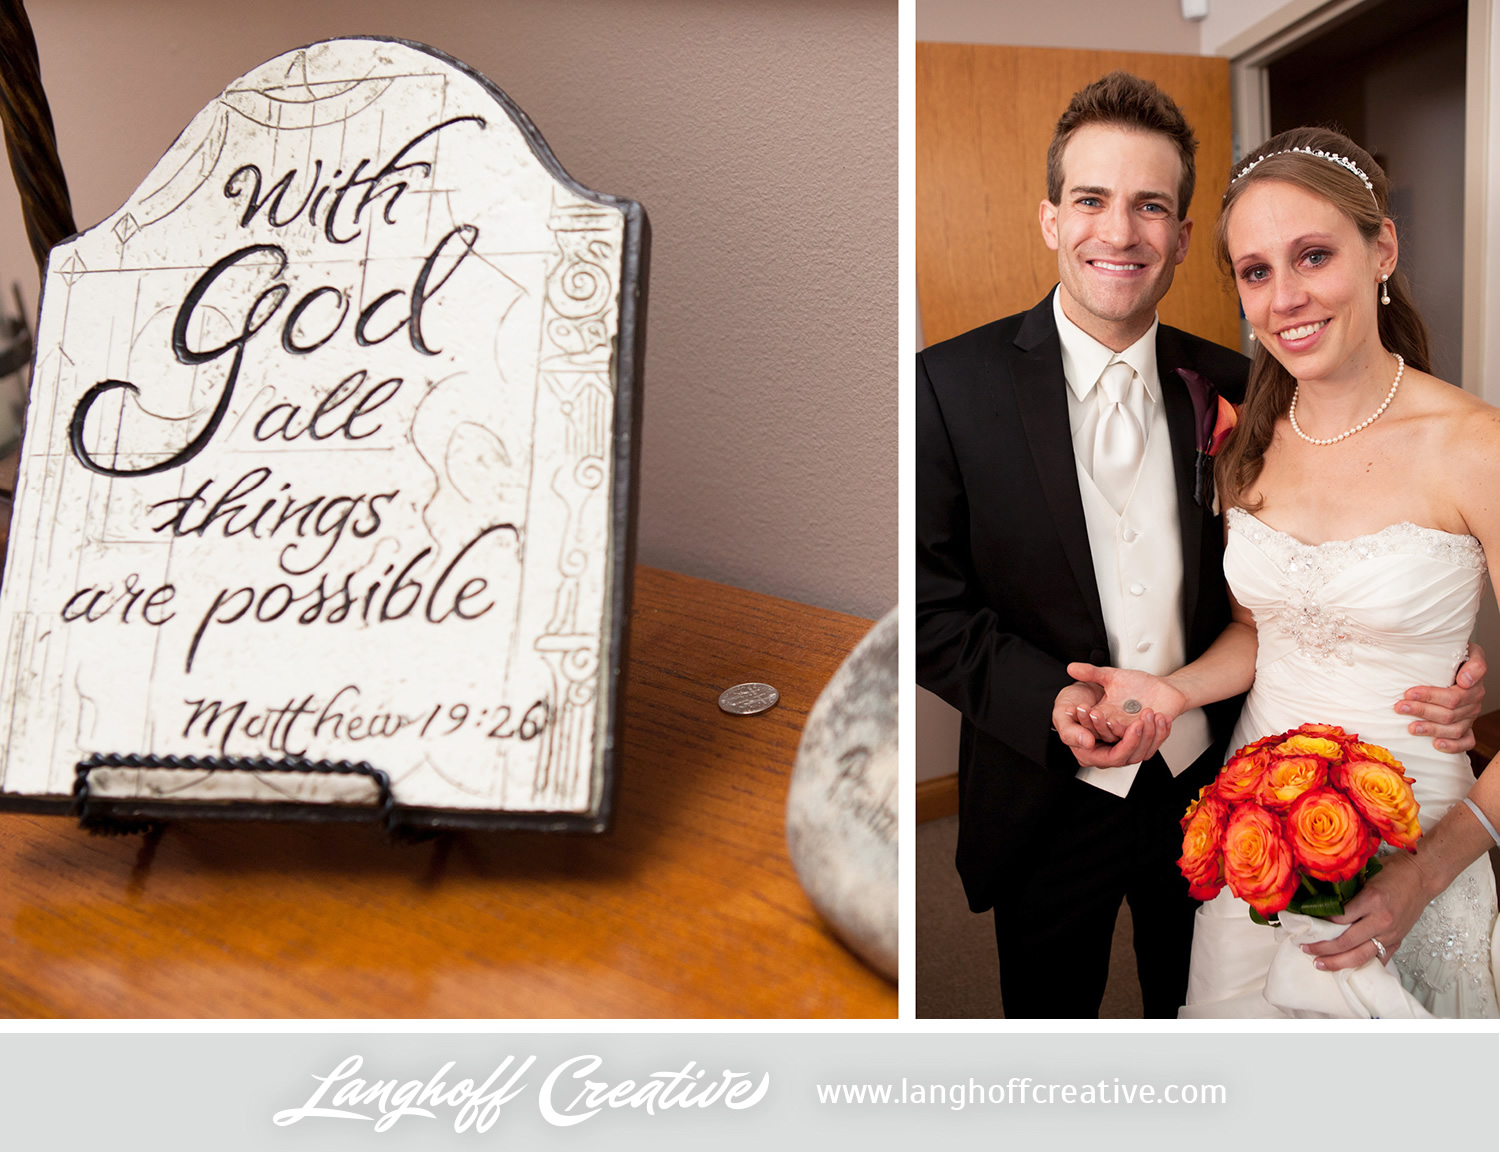 PlainfieldWedding-2013-LanghoffCreative-MattErin-13-photo.jpg